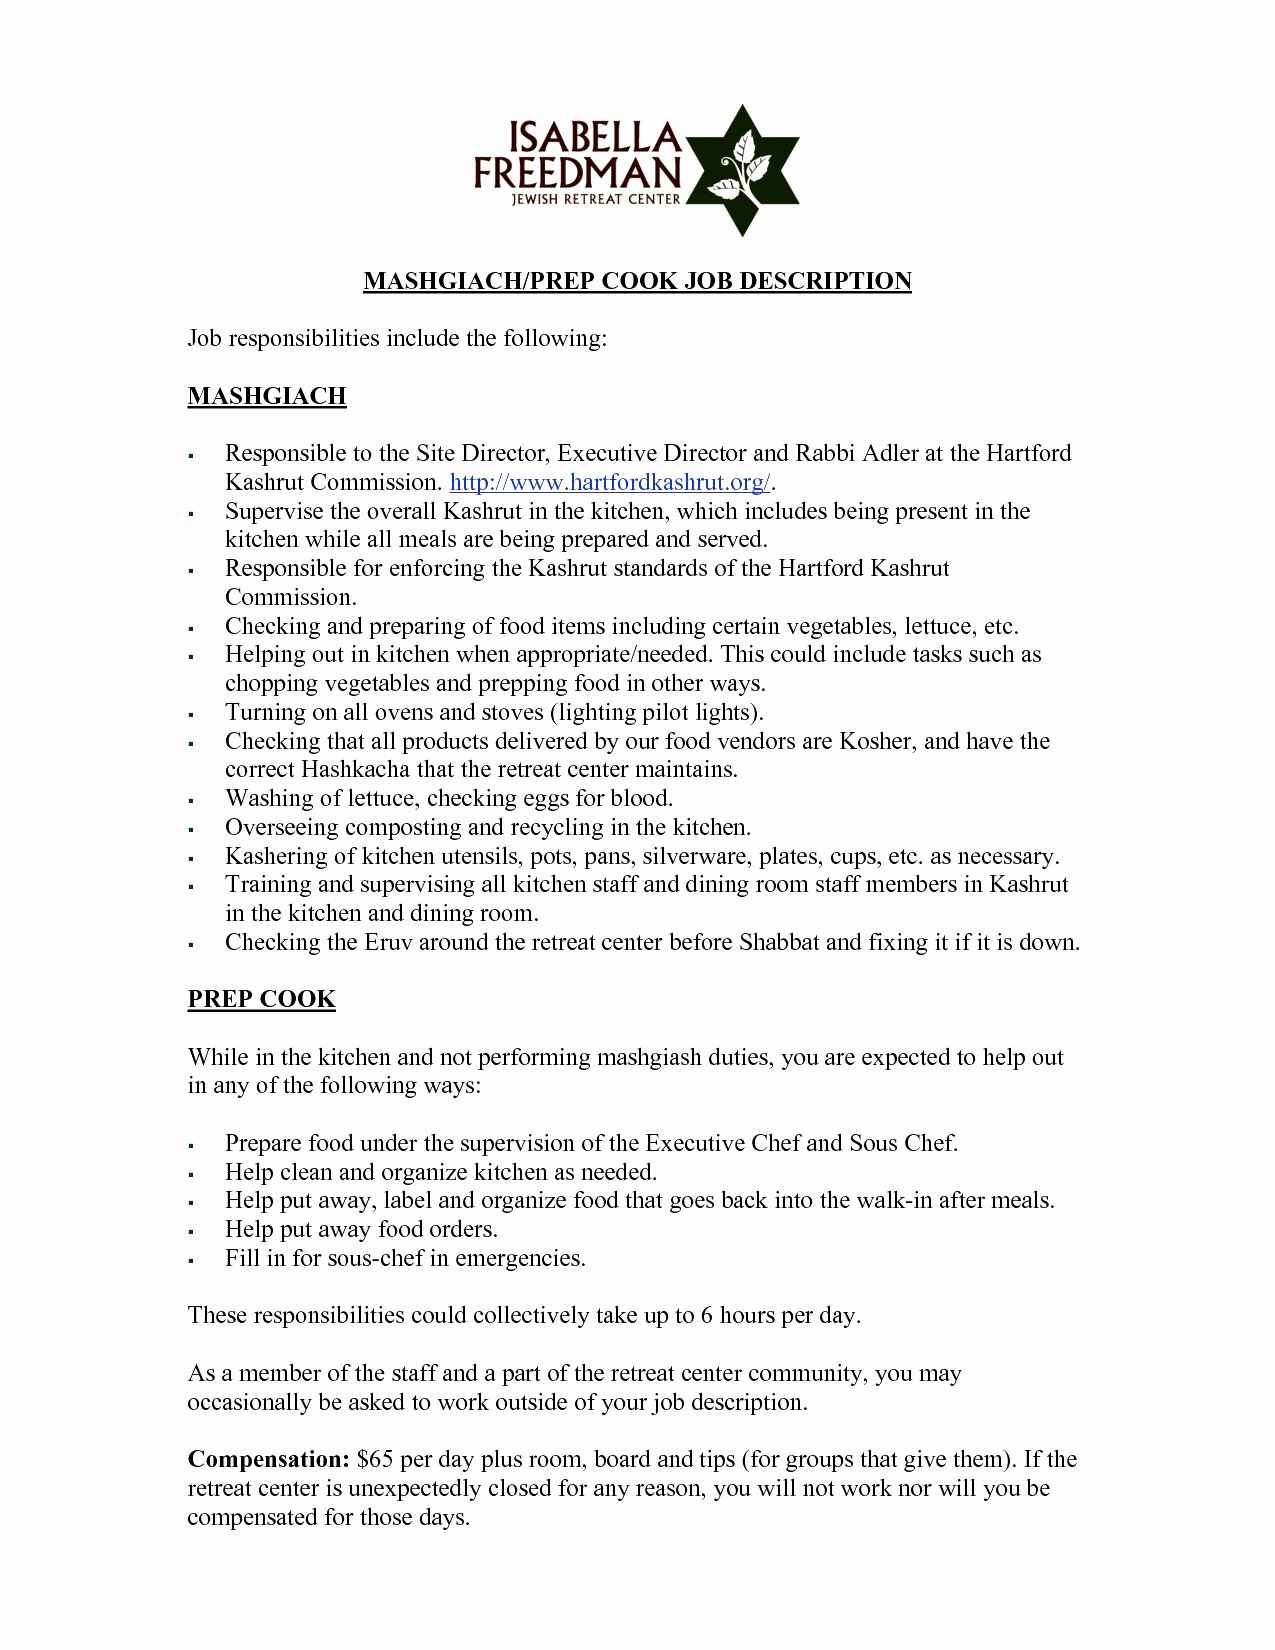 cover letter template healthcare examples letter templates